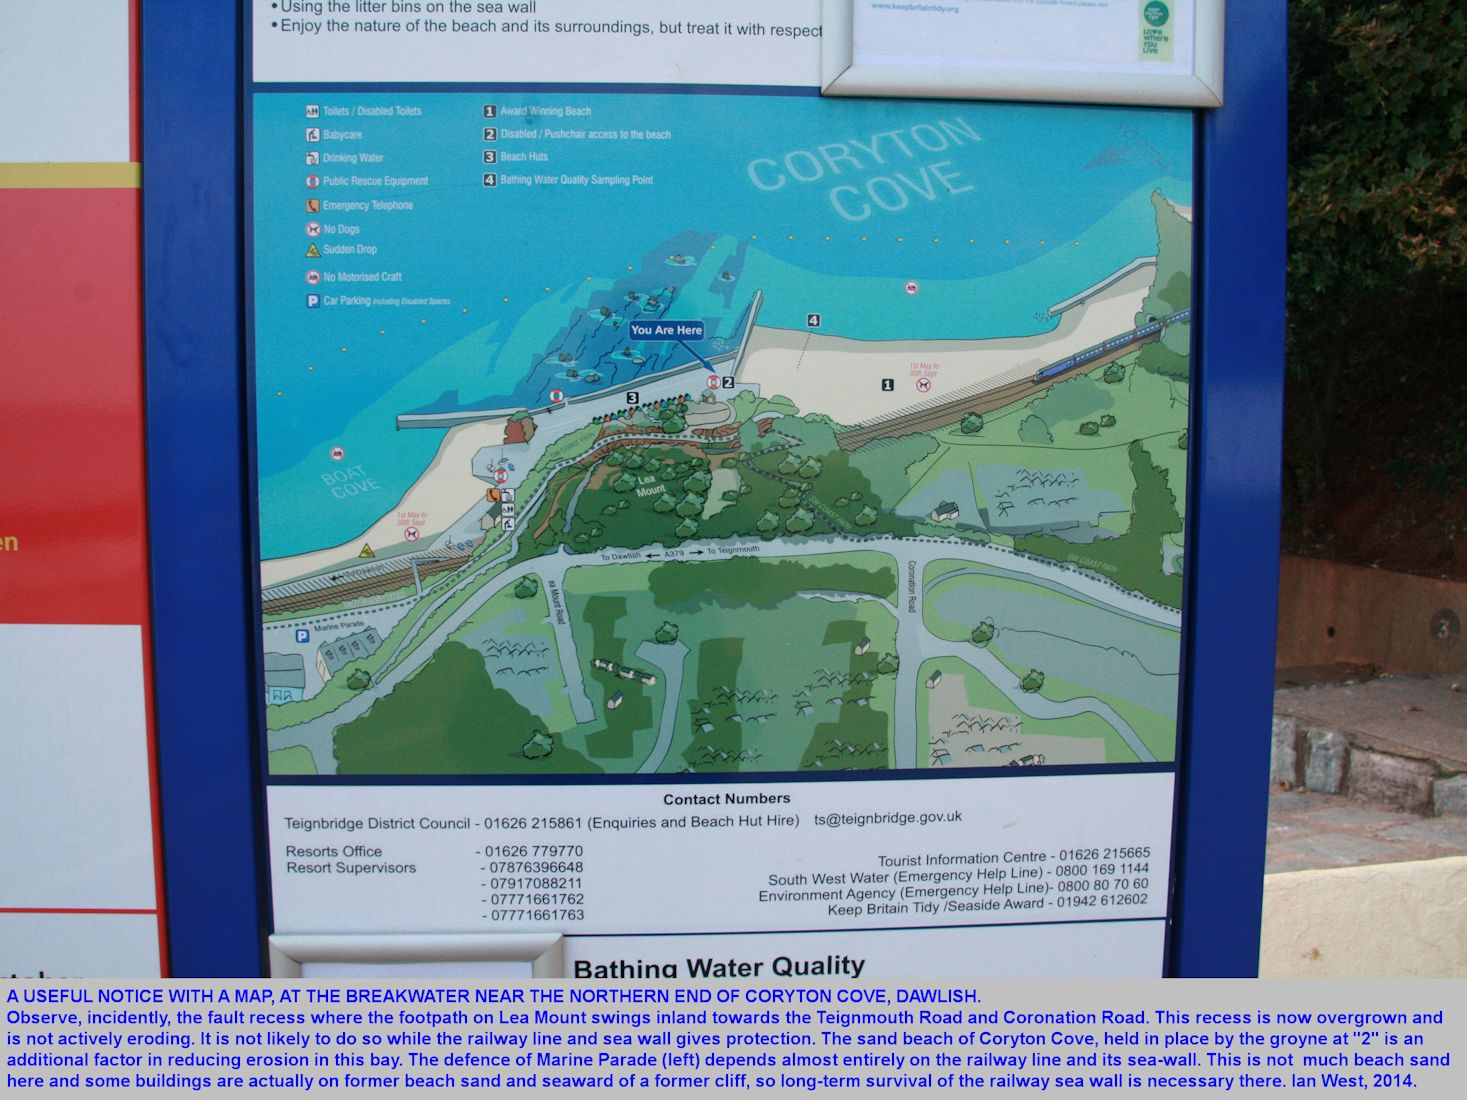 A useful notice with a map near the breakwater at the northern end of Coryton's Cove or Coryton Cove, Dawlish, Dawlish, Devon